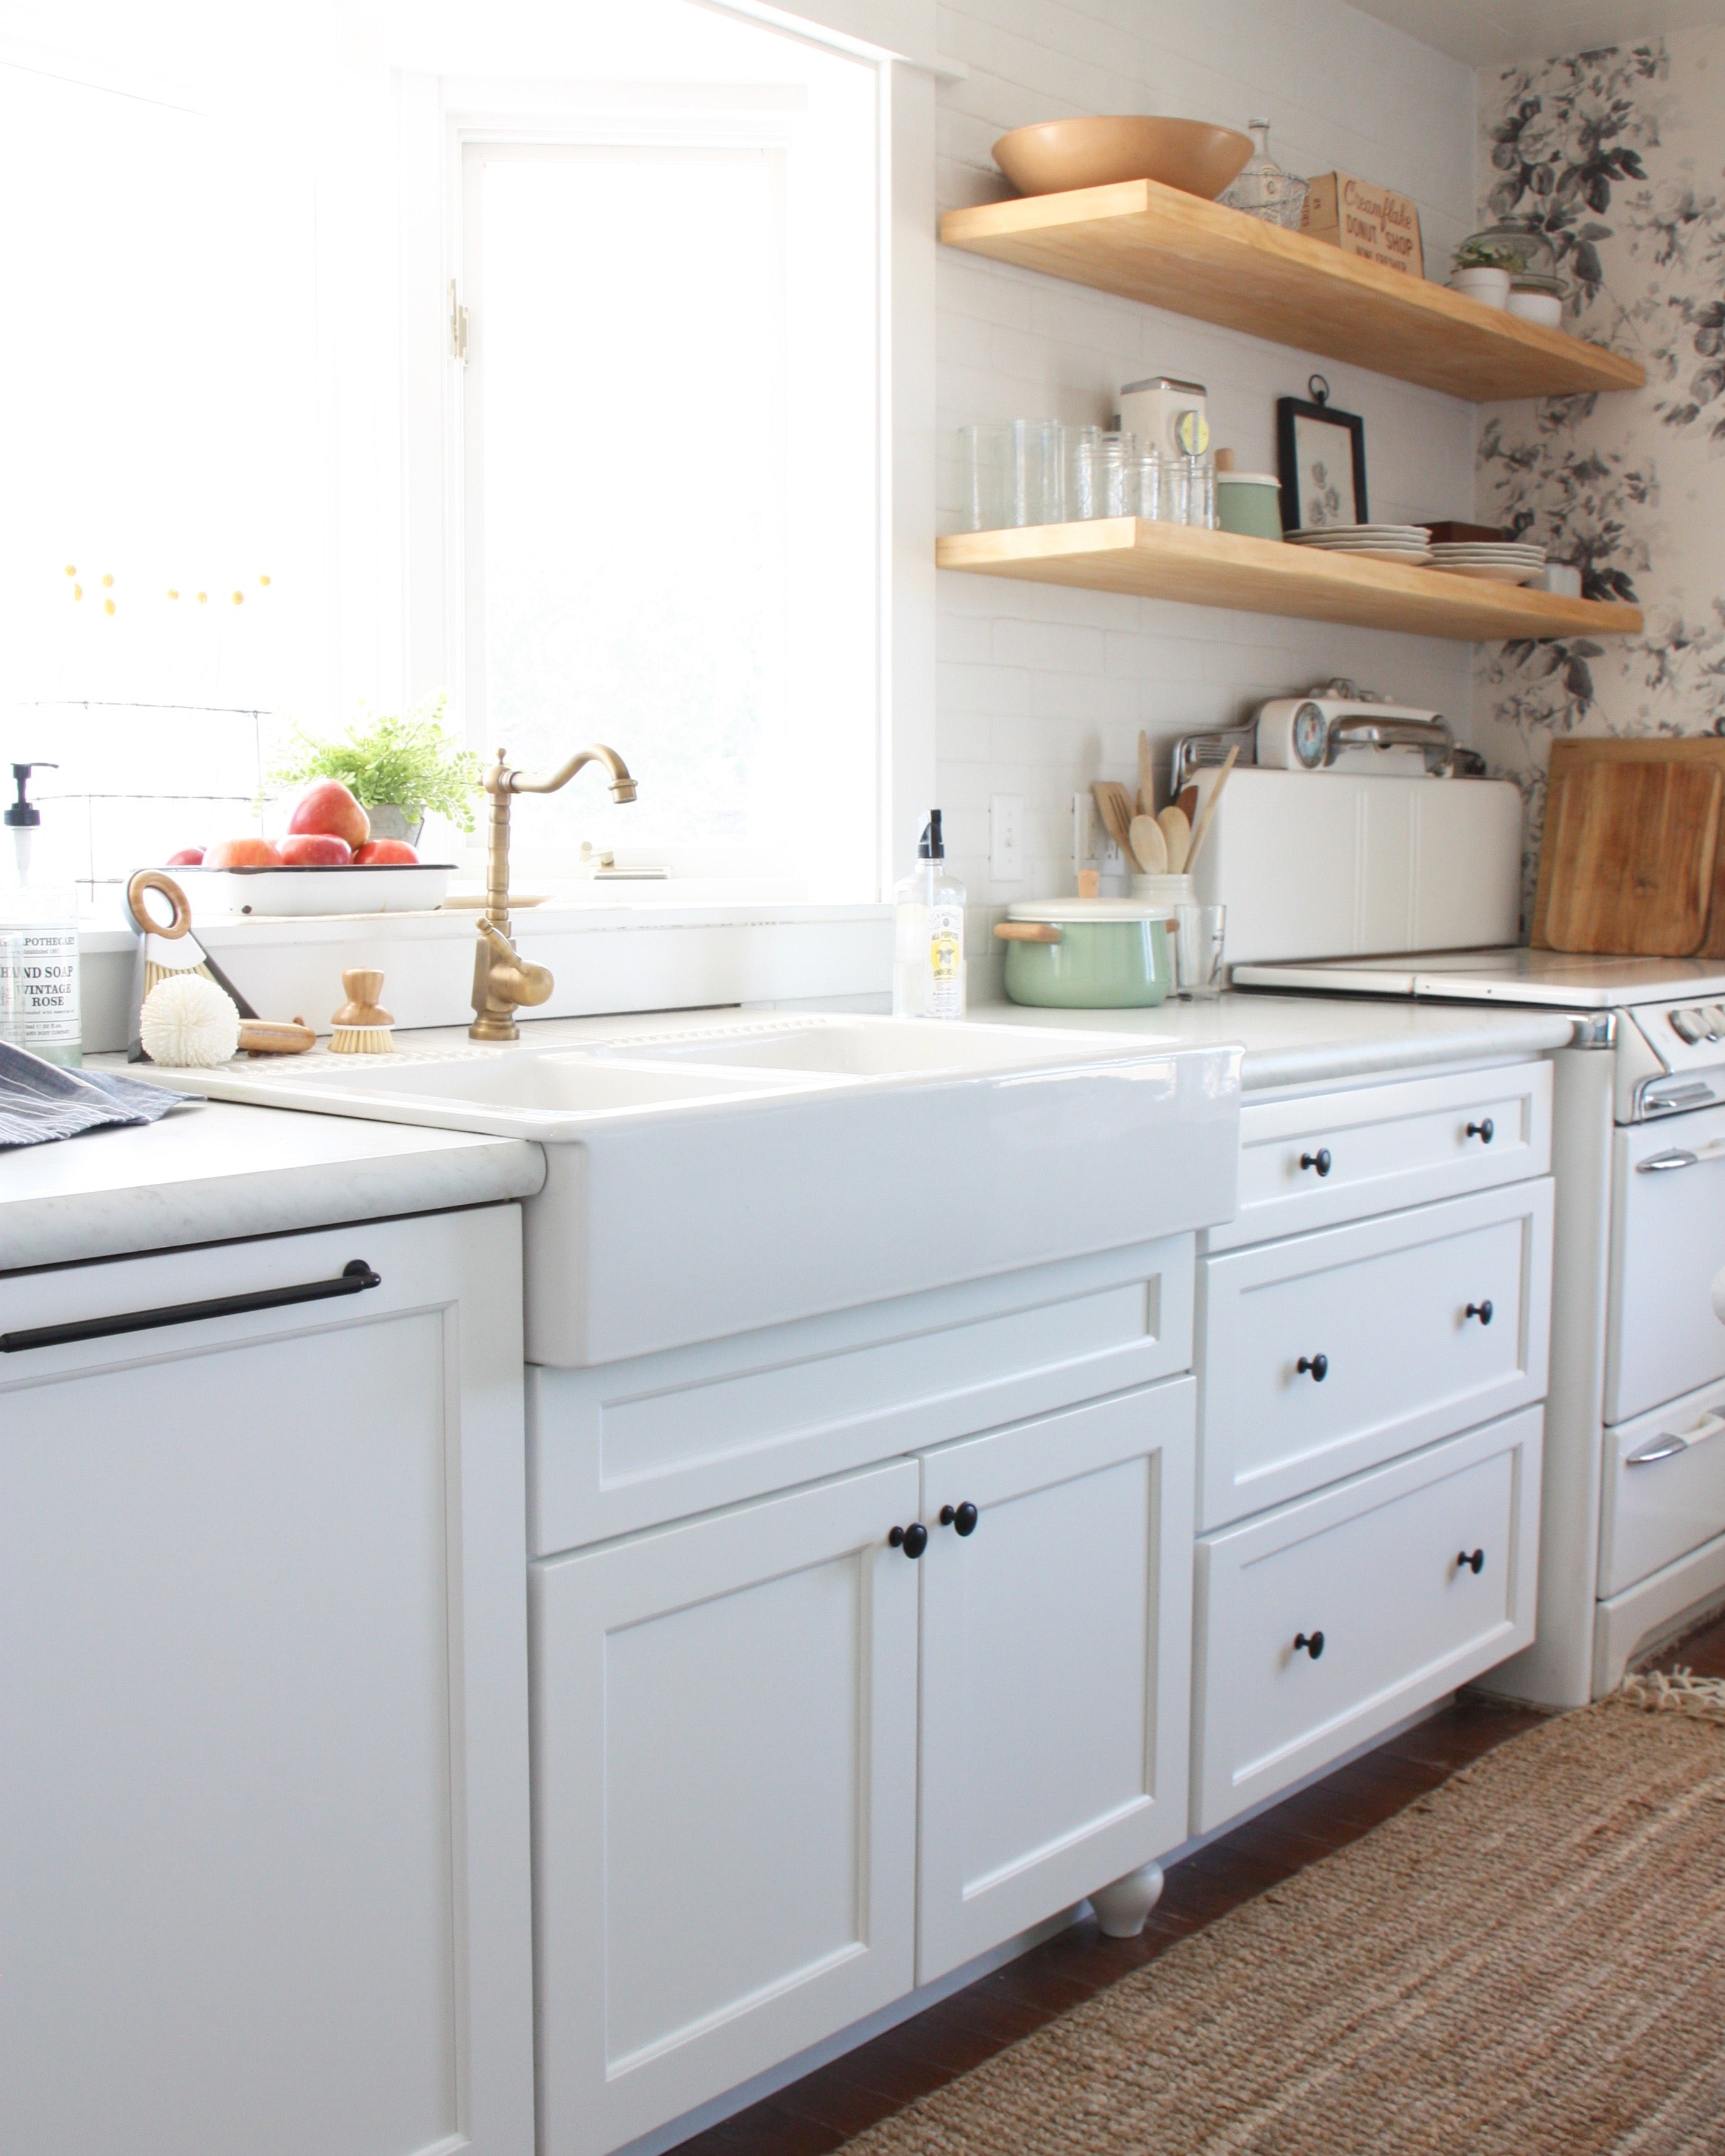 THE LONG AWAITED KITCHEN POST (AND SOURCE LIST!) – The Festive Farmhouse